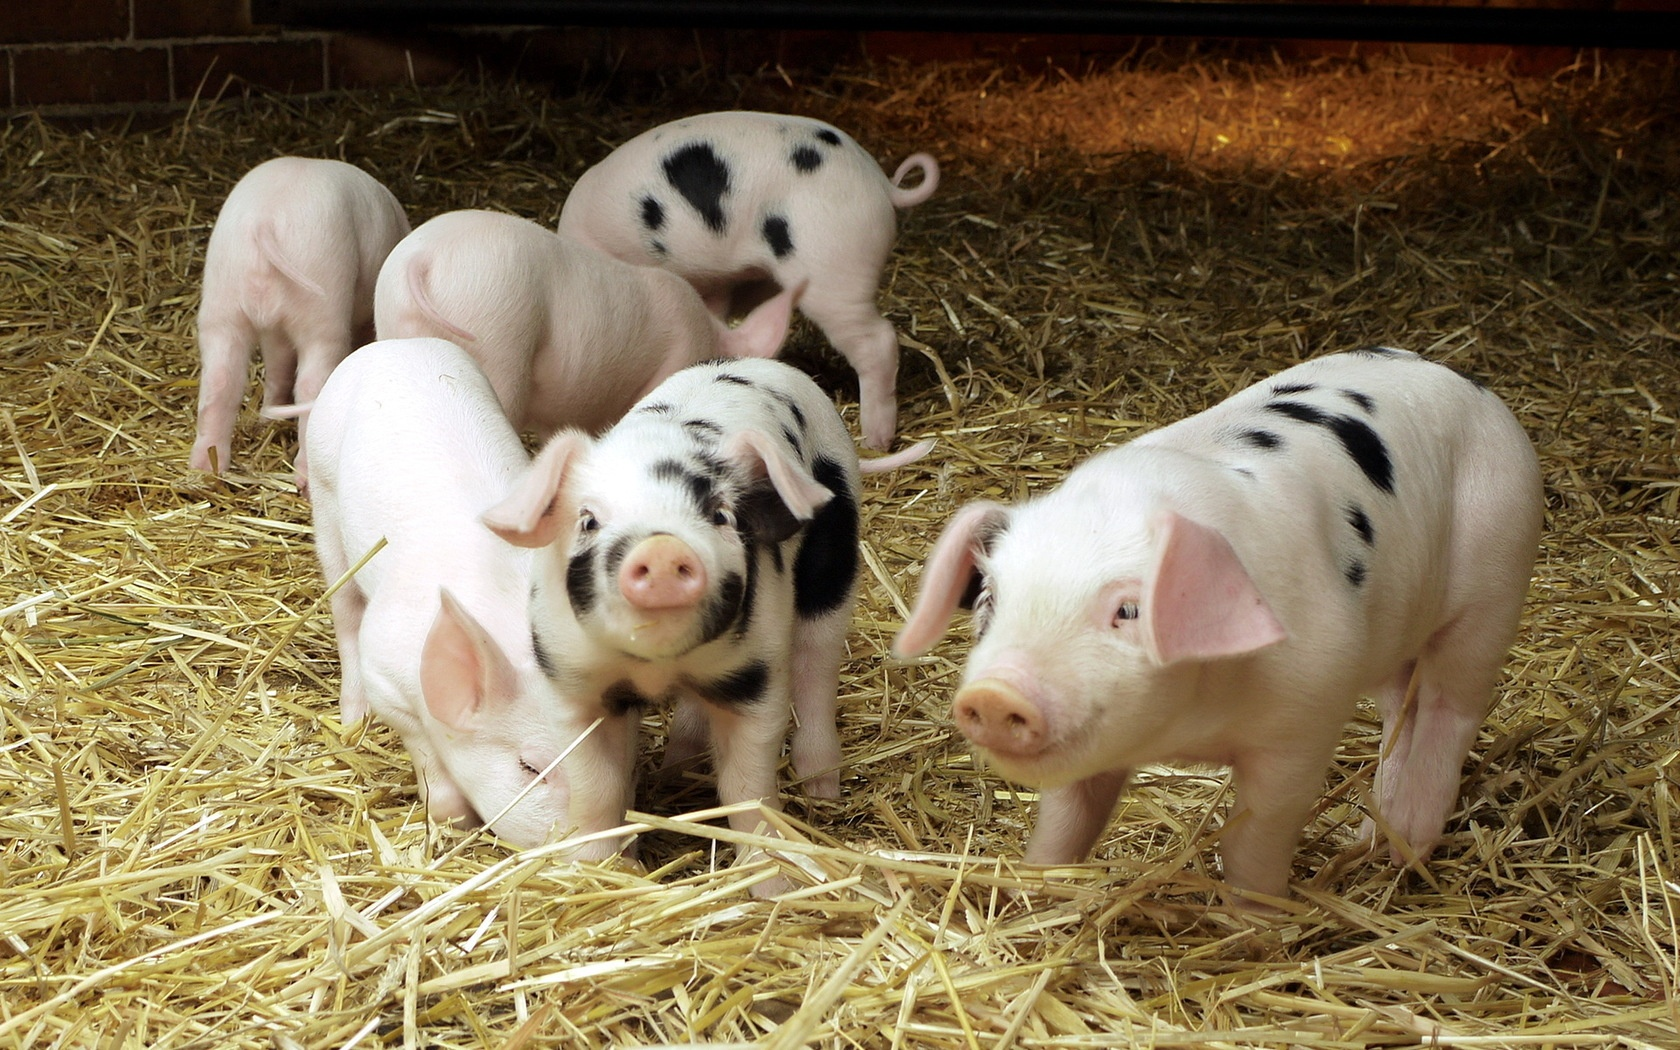 Cute Pigs Wallpapers   1680x1050   760859 1680x1050